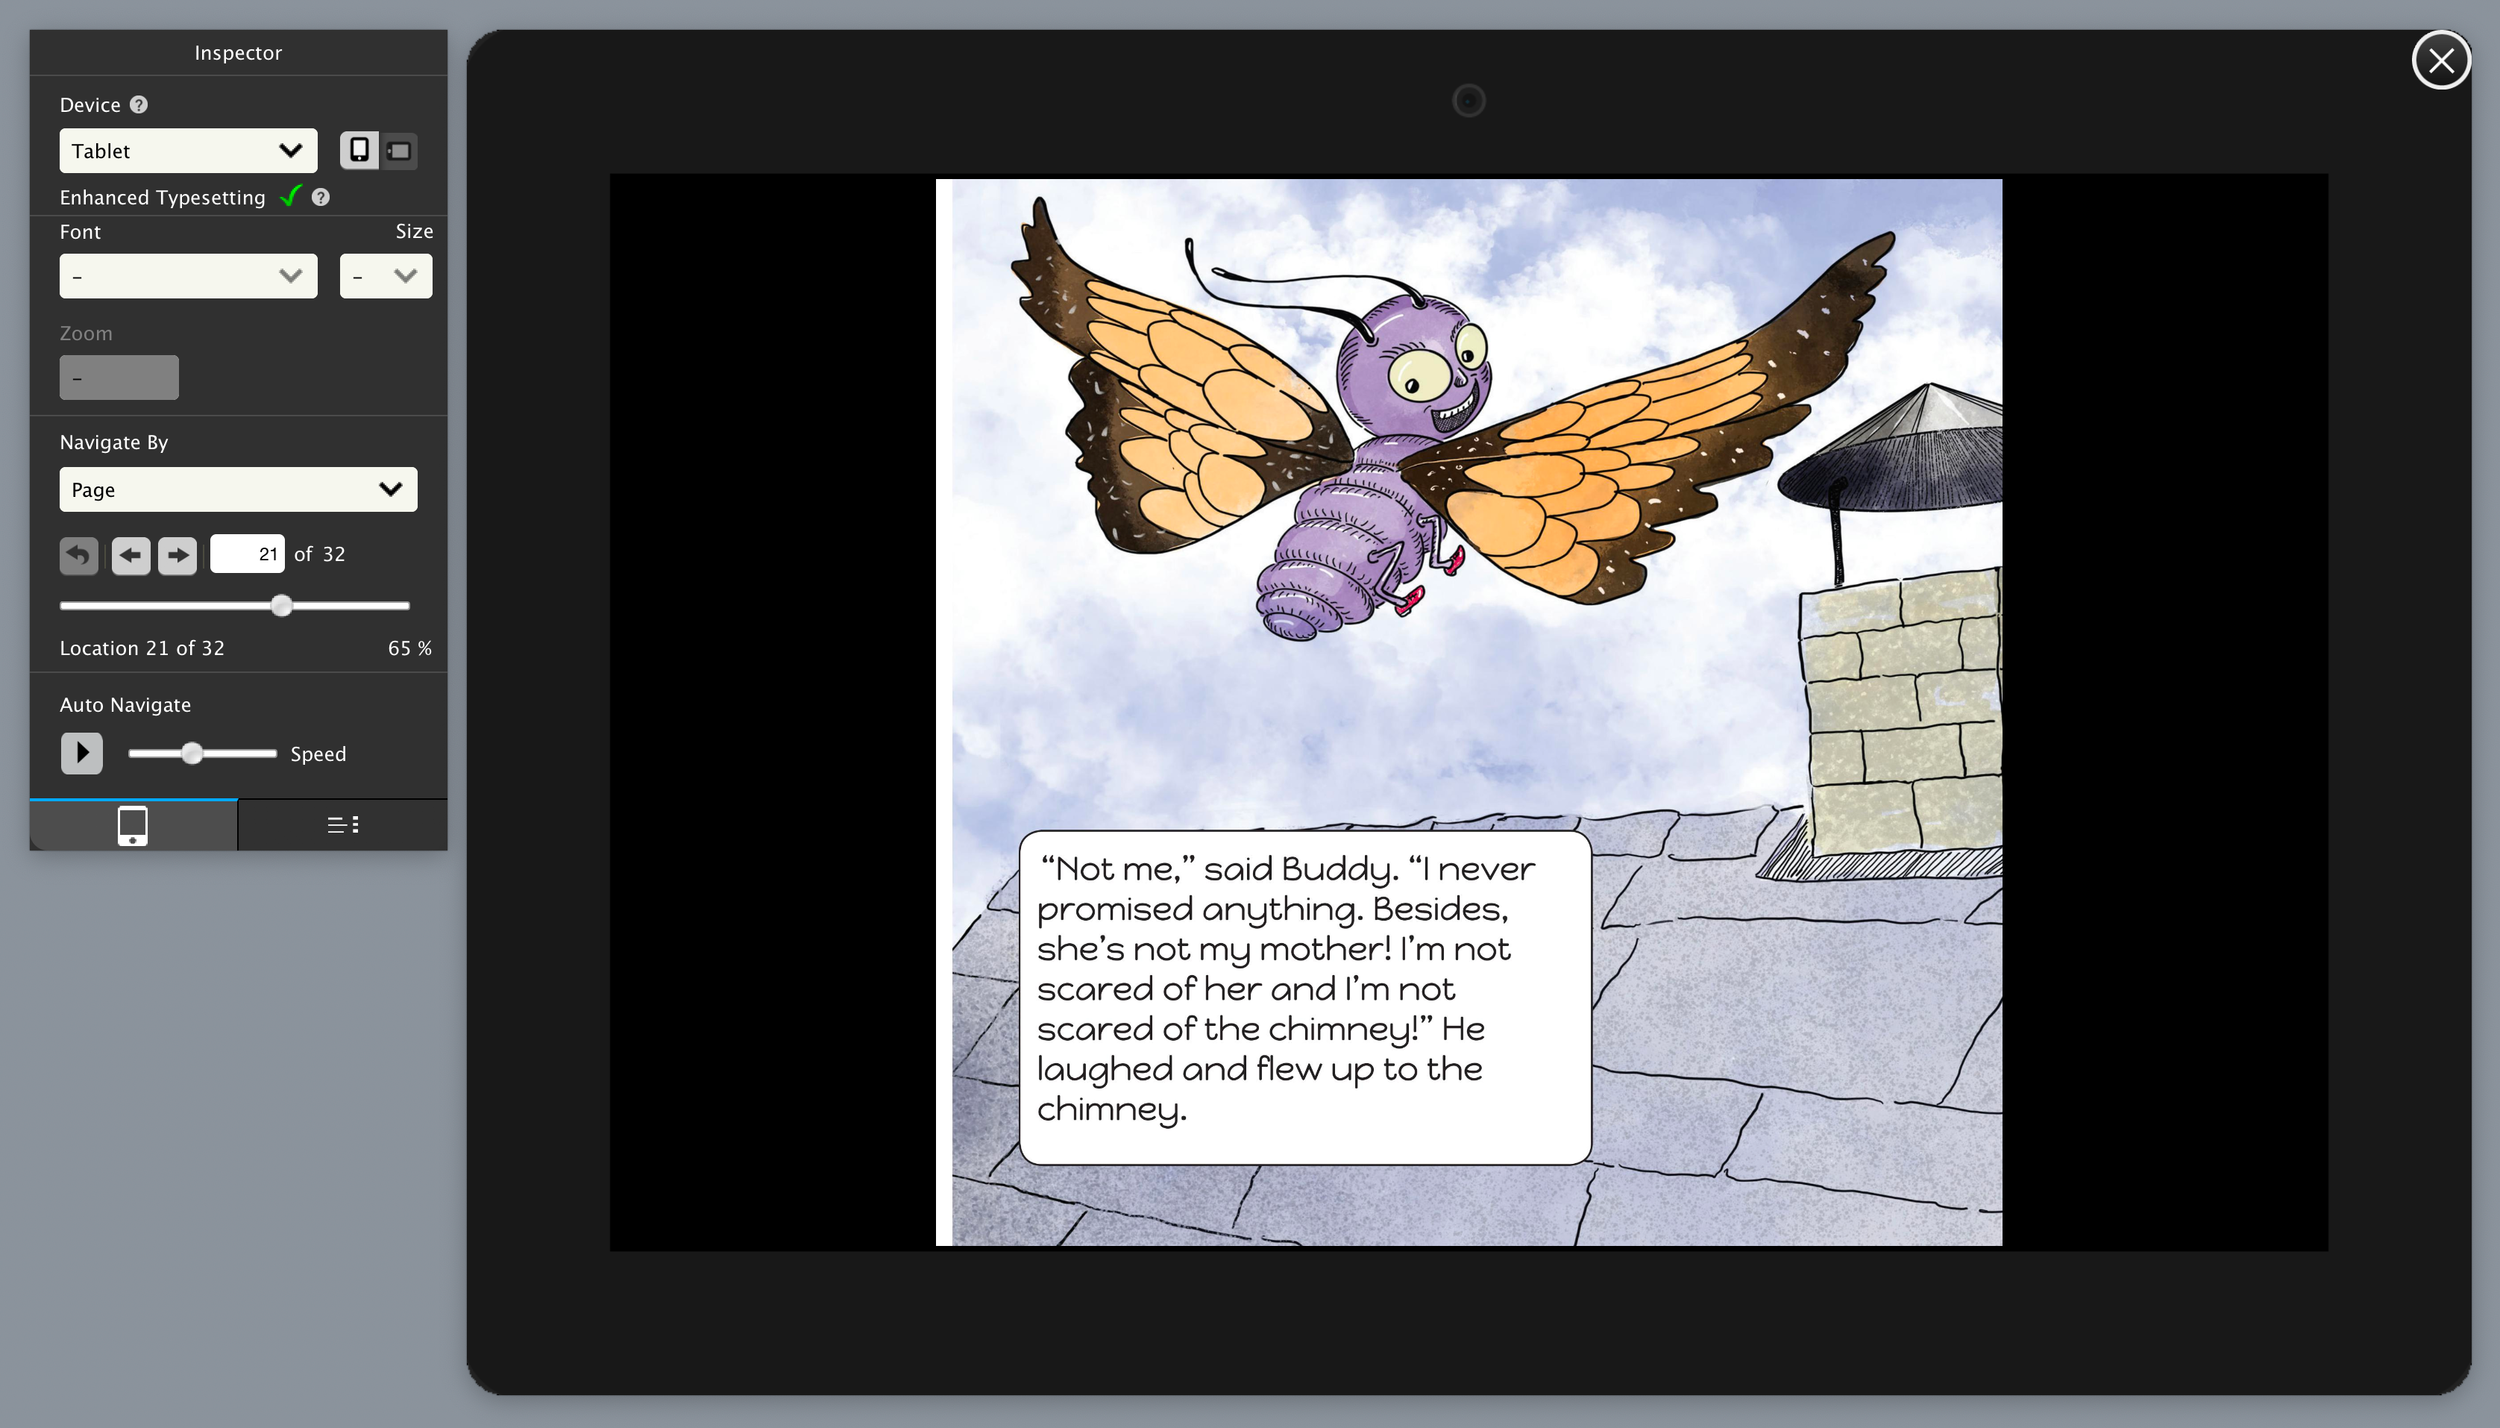 buddy_flies_to_roof_proof_blog.png print version of image, kindle create, indesign